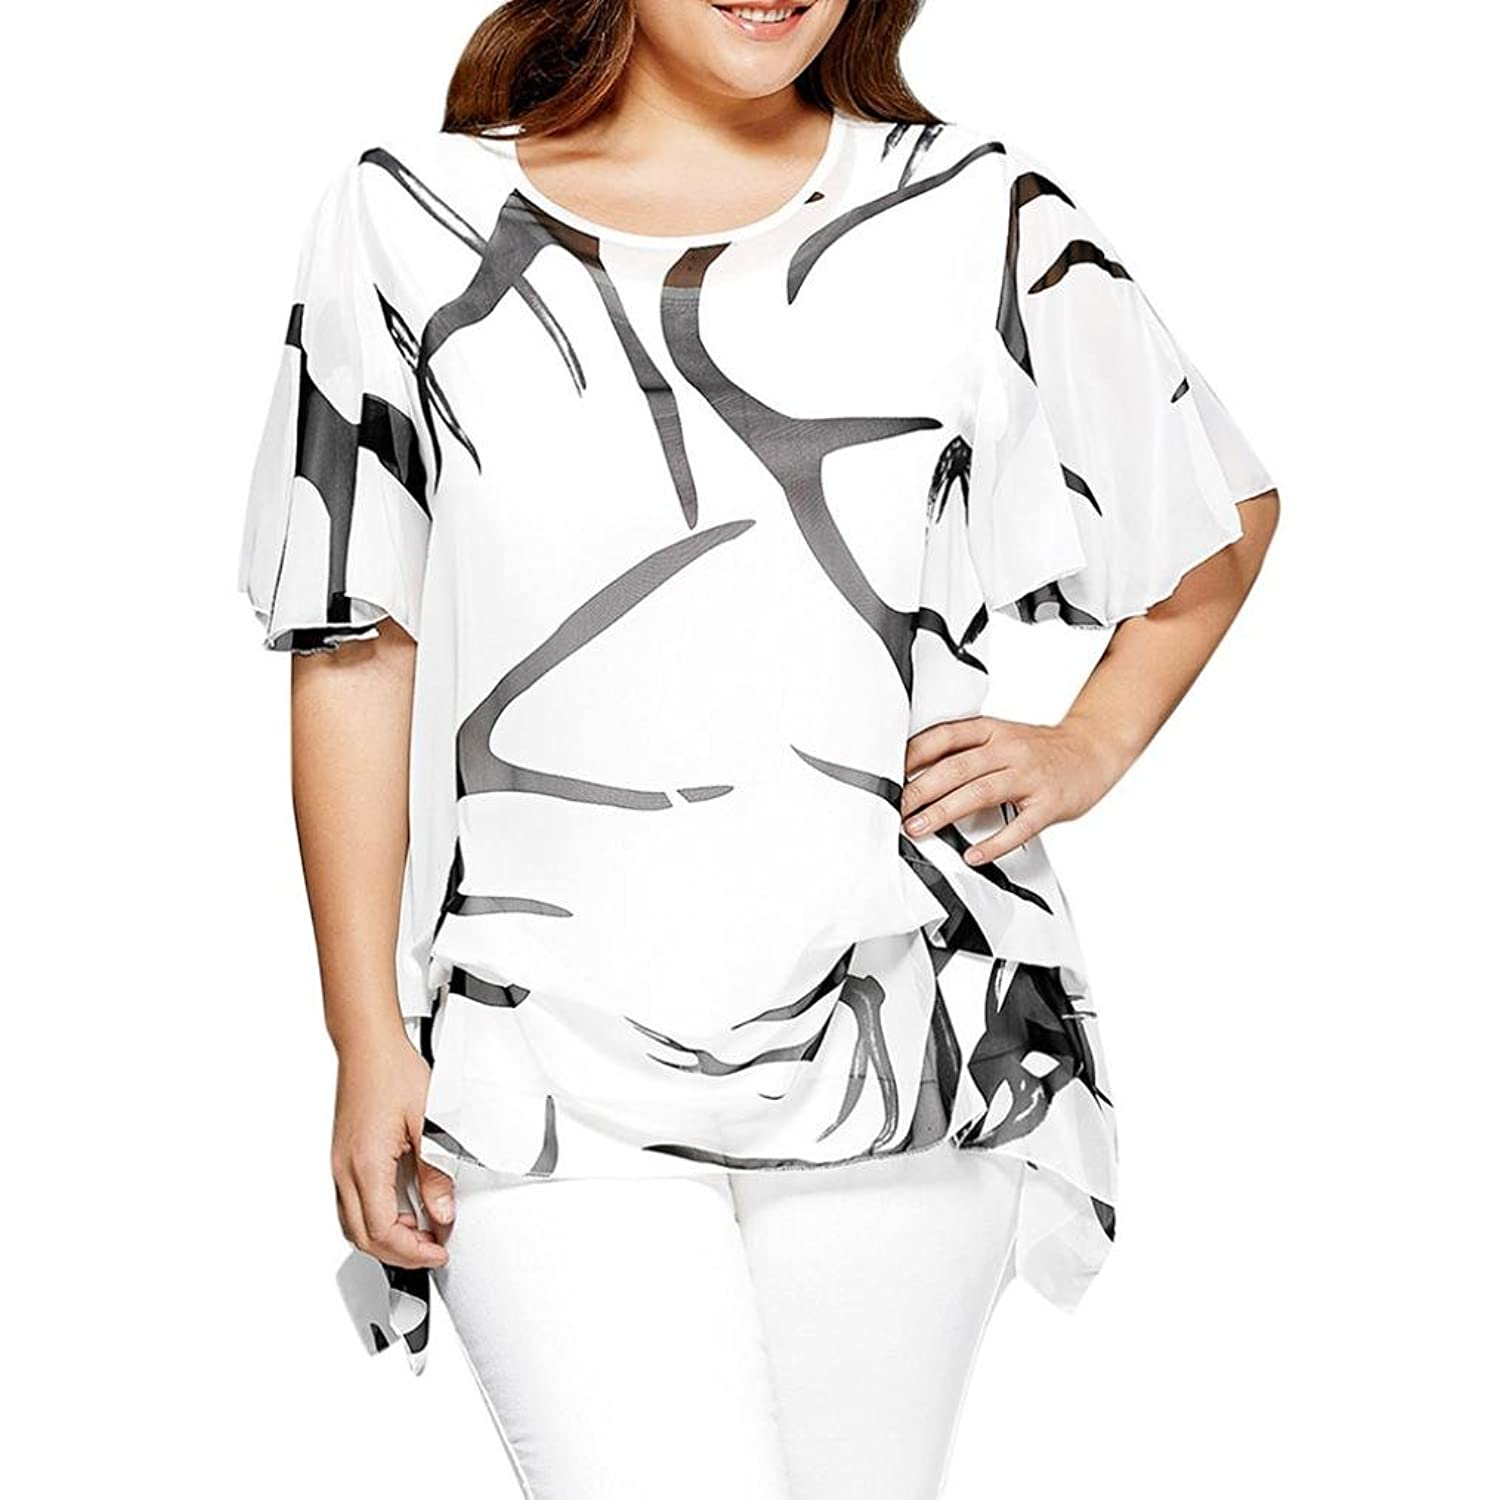 bf8c1447cd4 woman long blouse transparent woman blouse transparent woman blouse white  woman chic long sleeve blouse woman chic long sleeve T shirt woman sexy  white ...